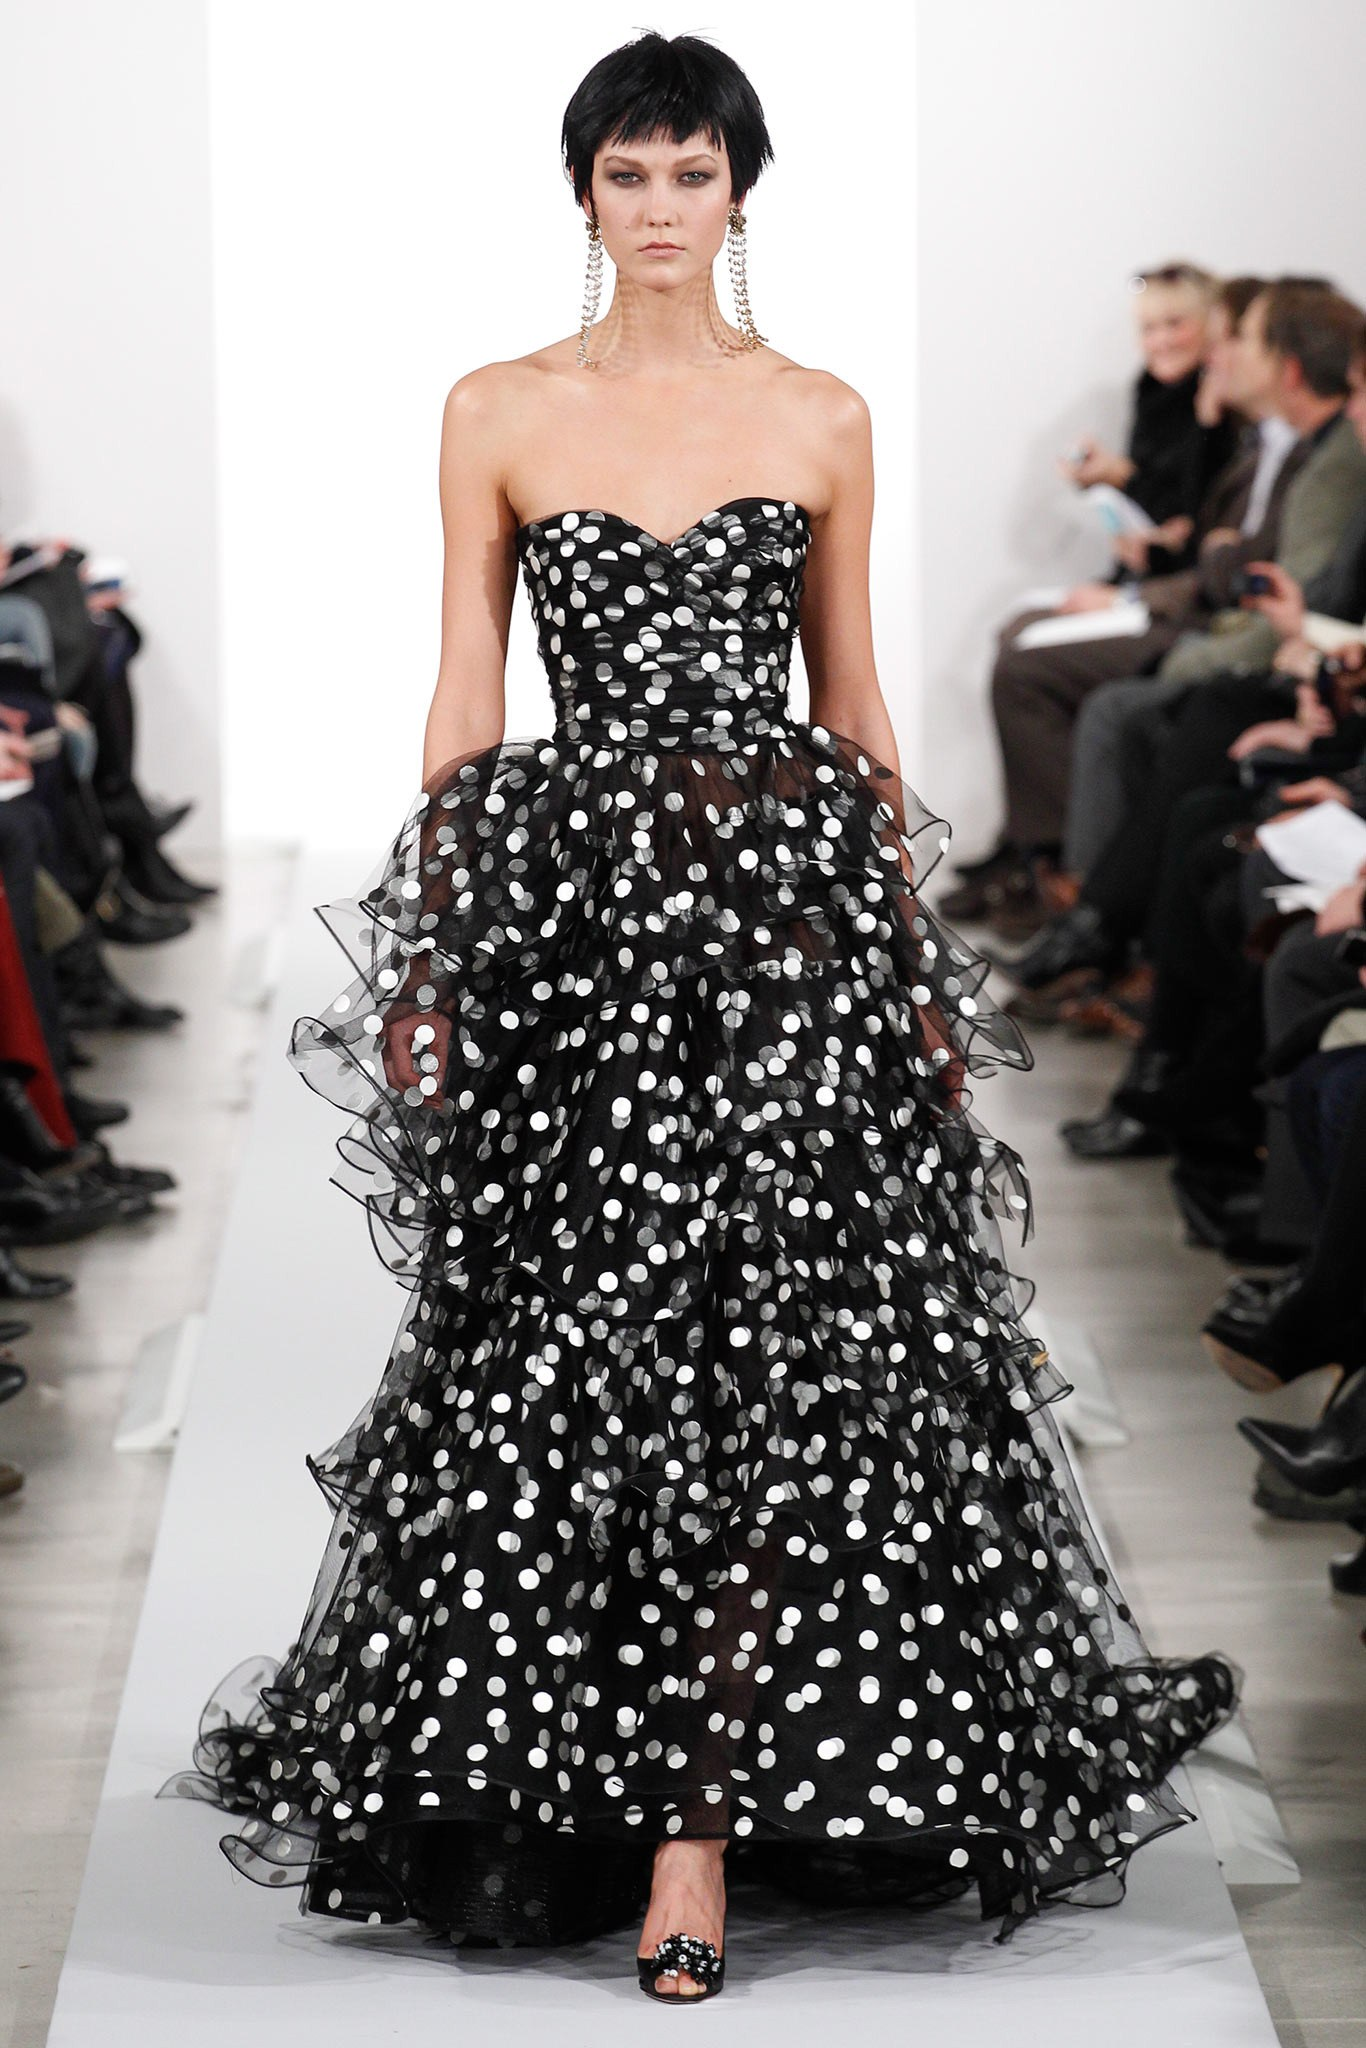 trend-flamenco-polka-dots-55